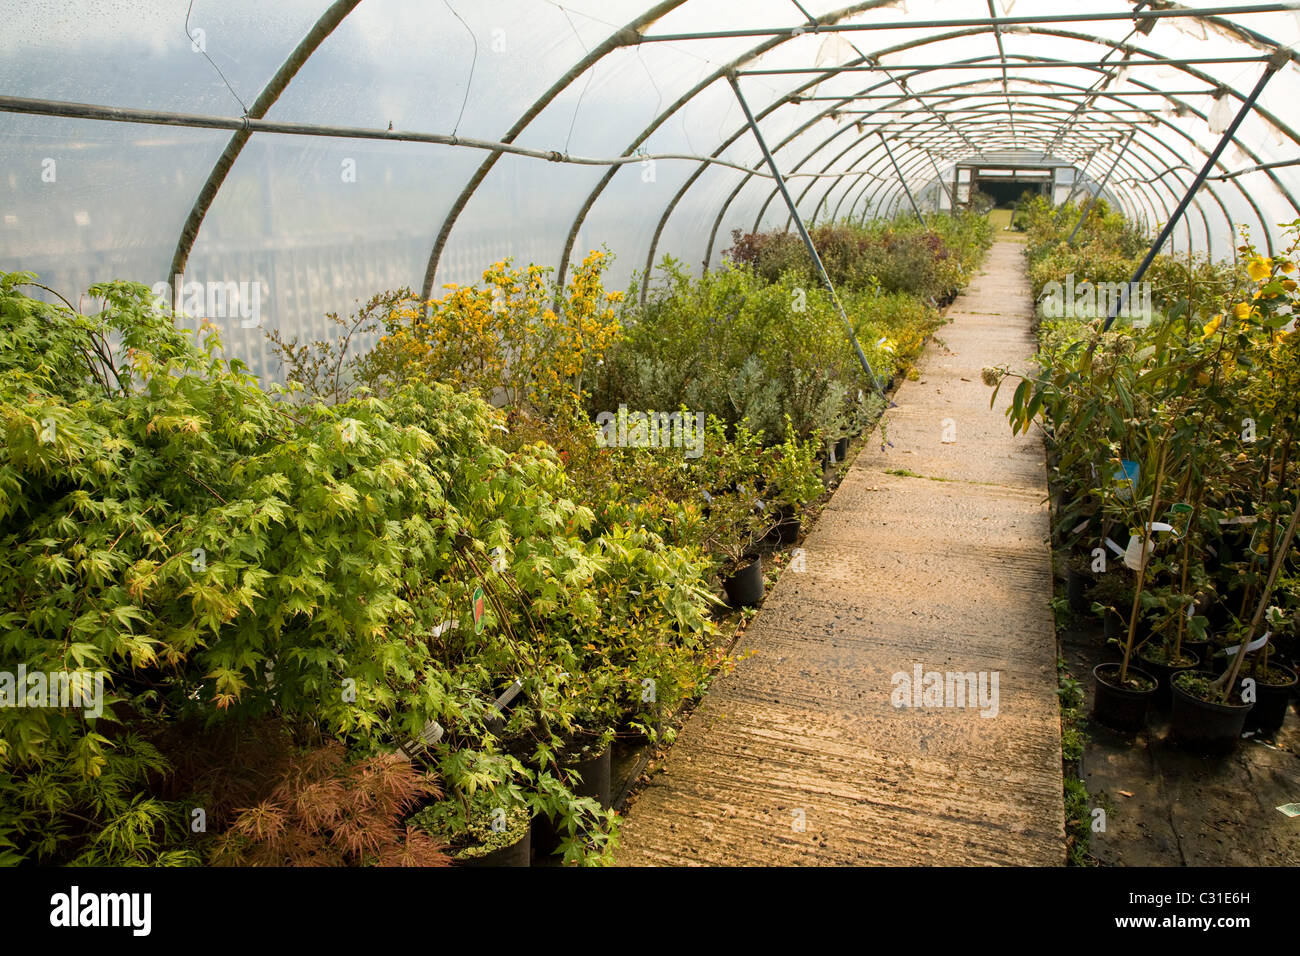 Polytunnel in garden nursery with shrubs growing - Stock Image